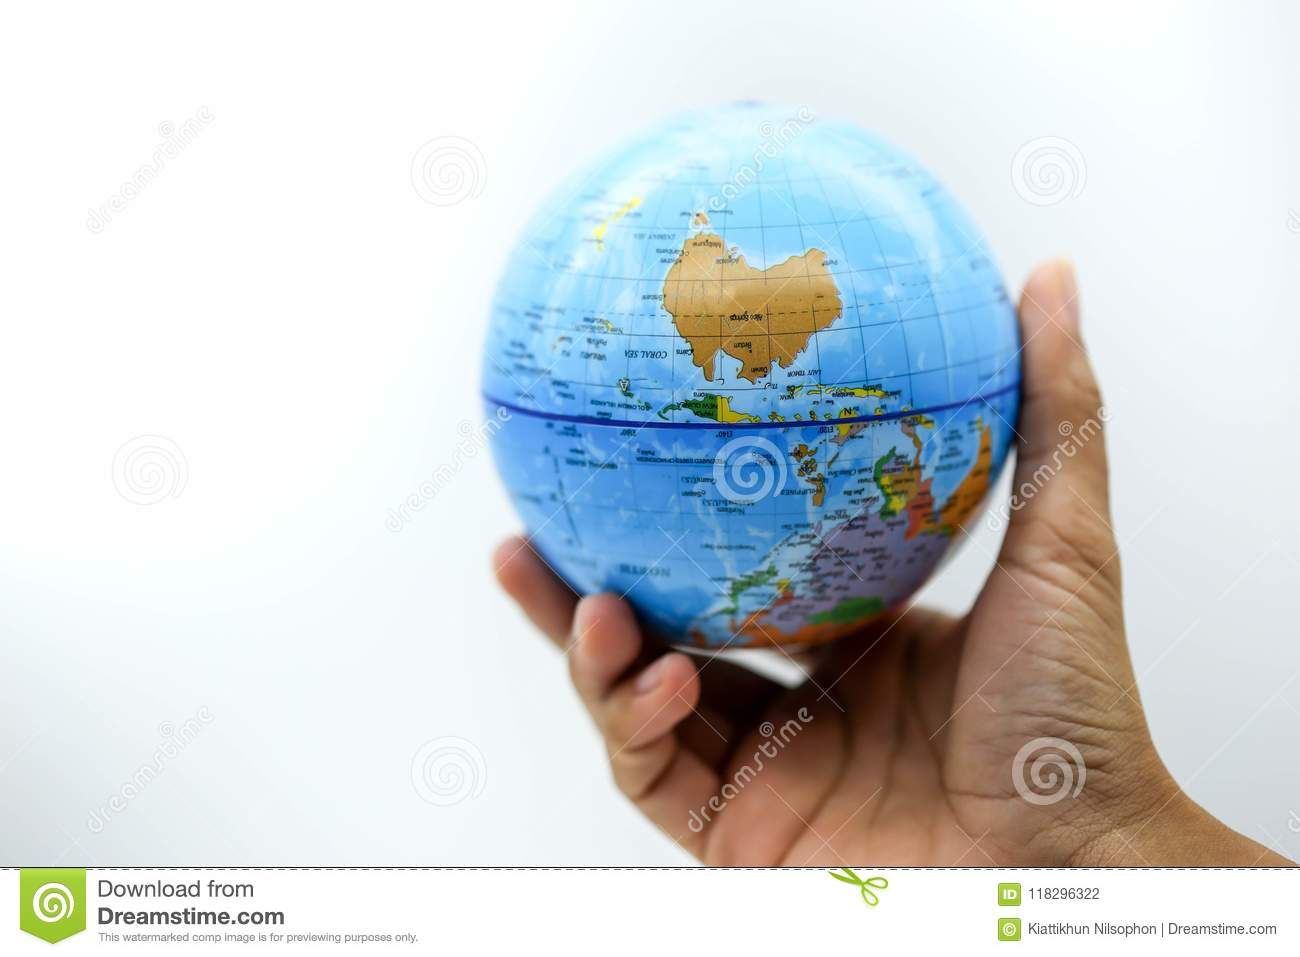 World Map On Hands.Holding Globe World Map On Hands Stock Photo Image Of Businessman